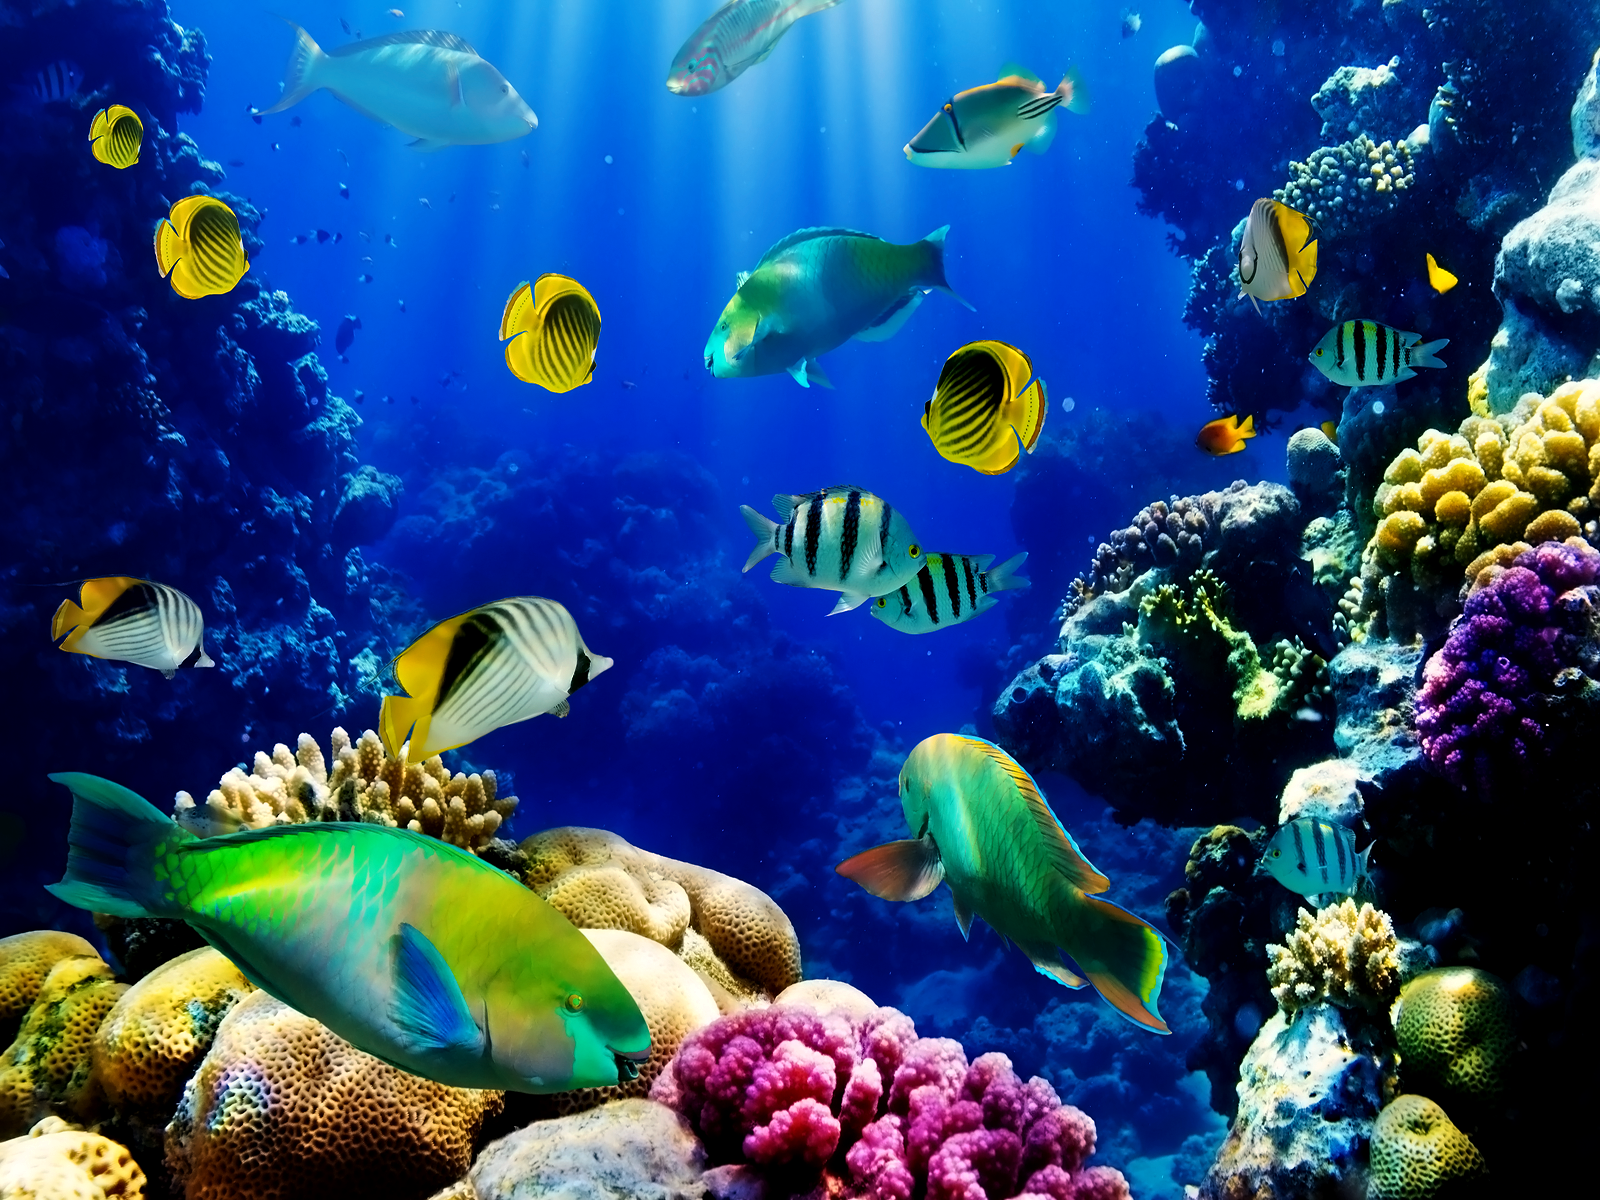 Fish Aquarium Wallpaper WallpaperSafari Epic Car Wallpapers Pinterest